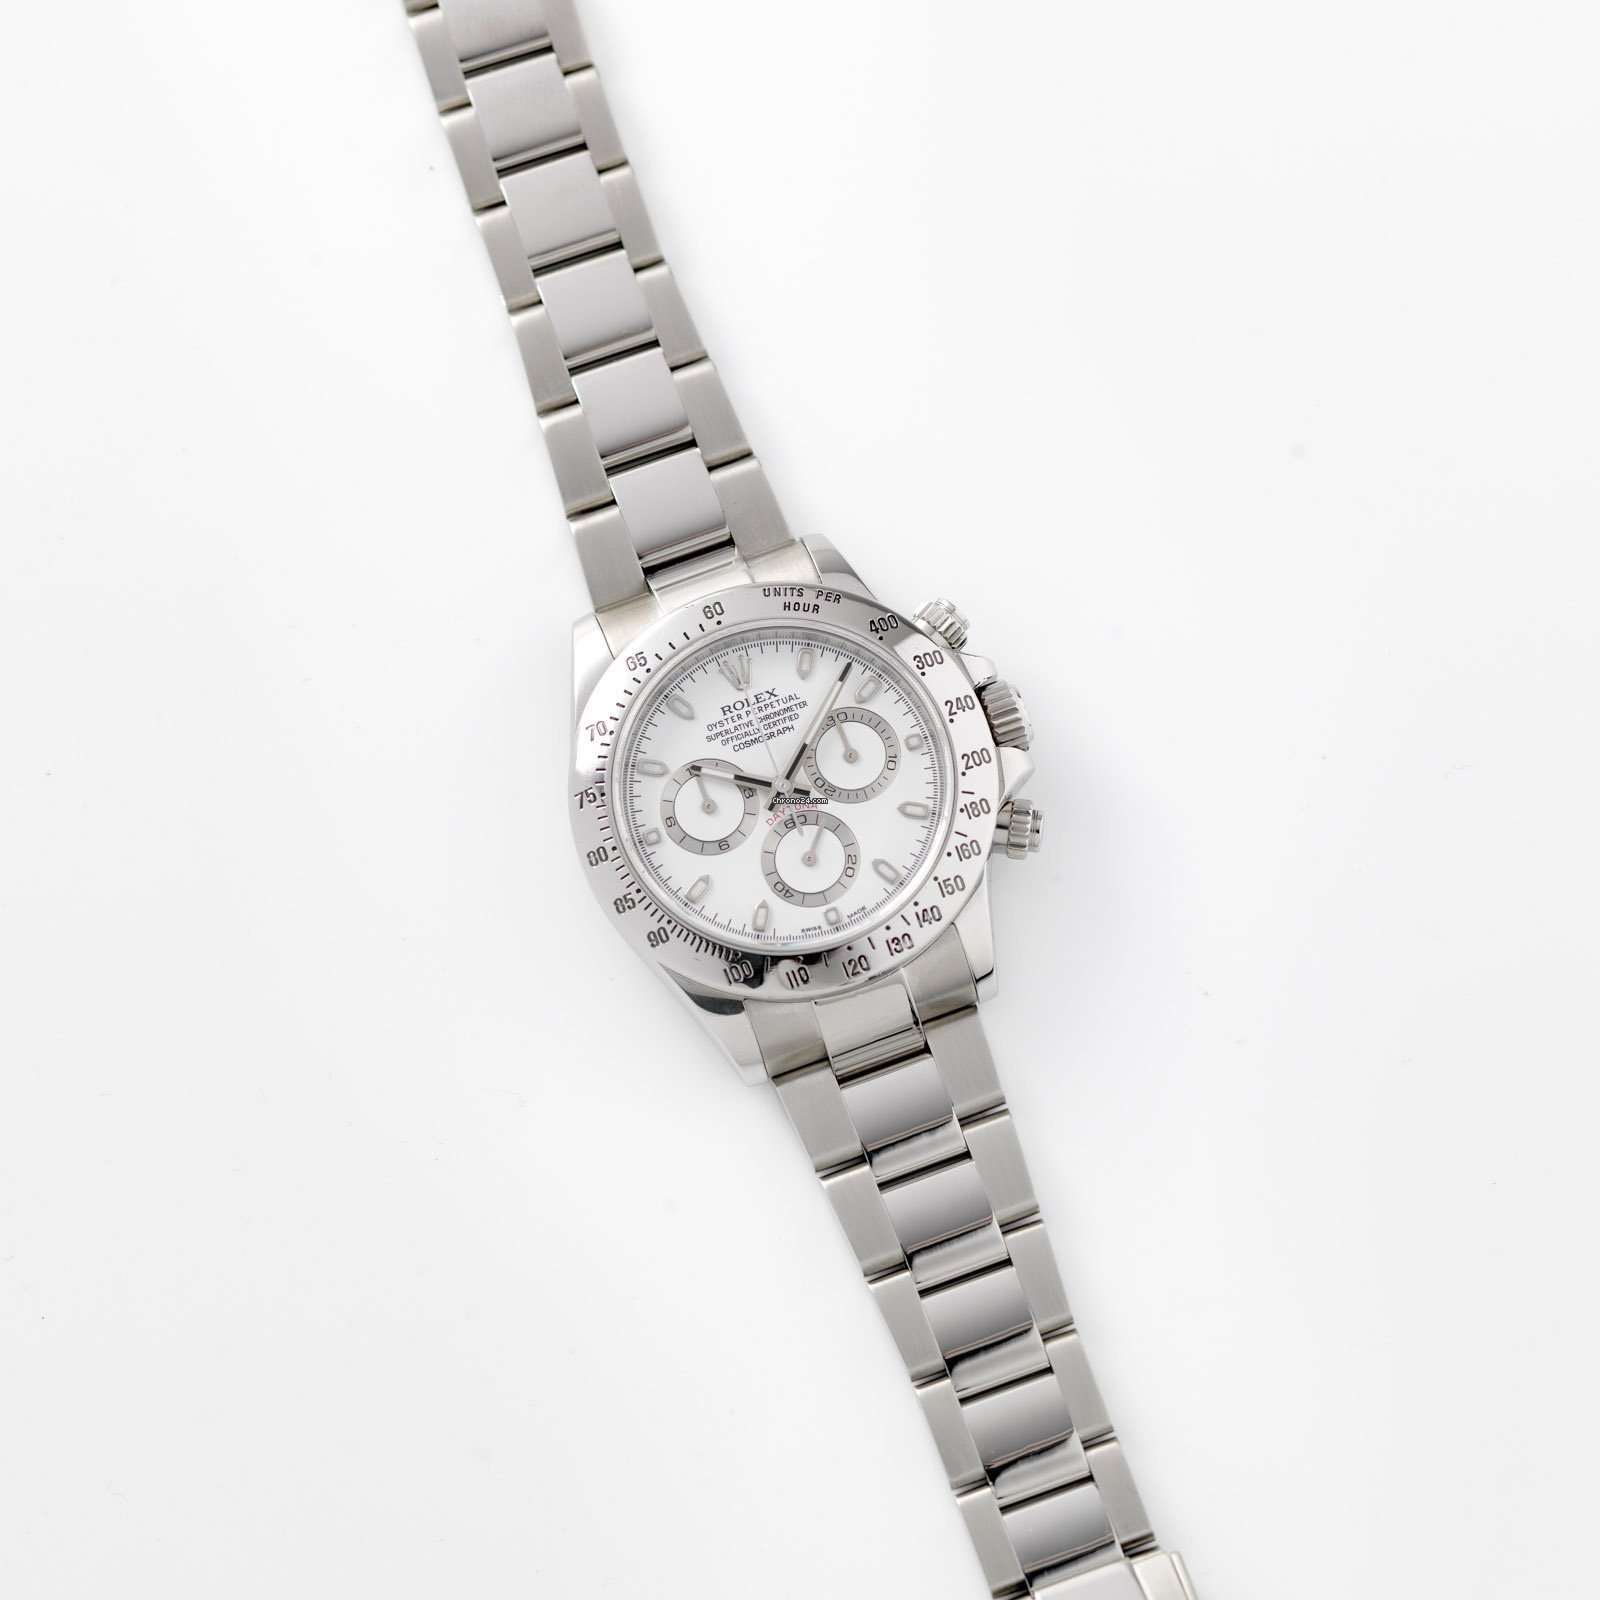 Rolex Daytona Steel 116520 White 'APH' Dial for £16,970 for